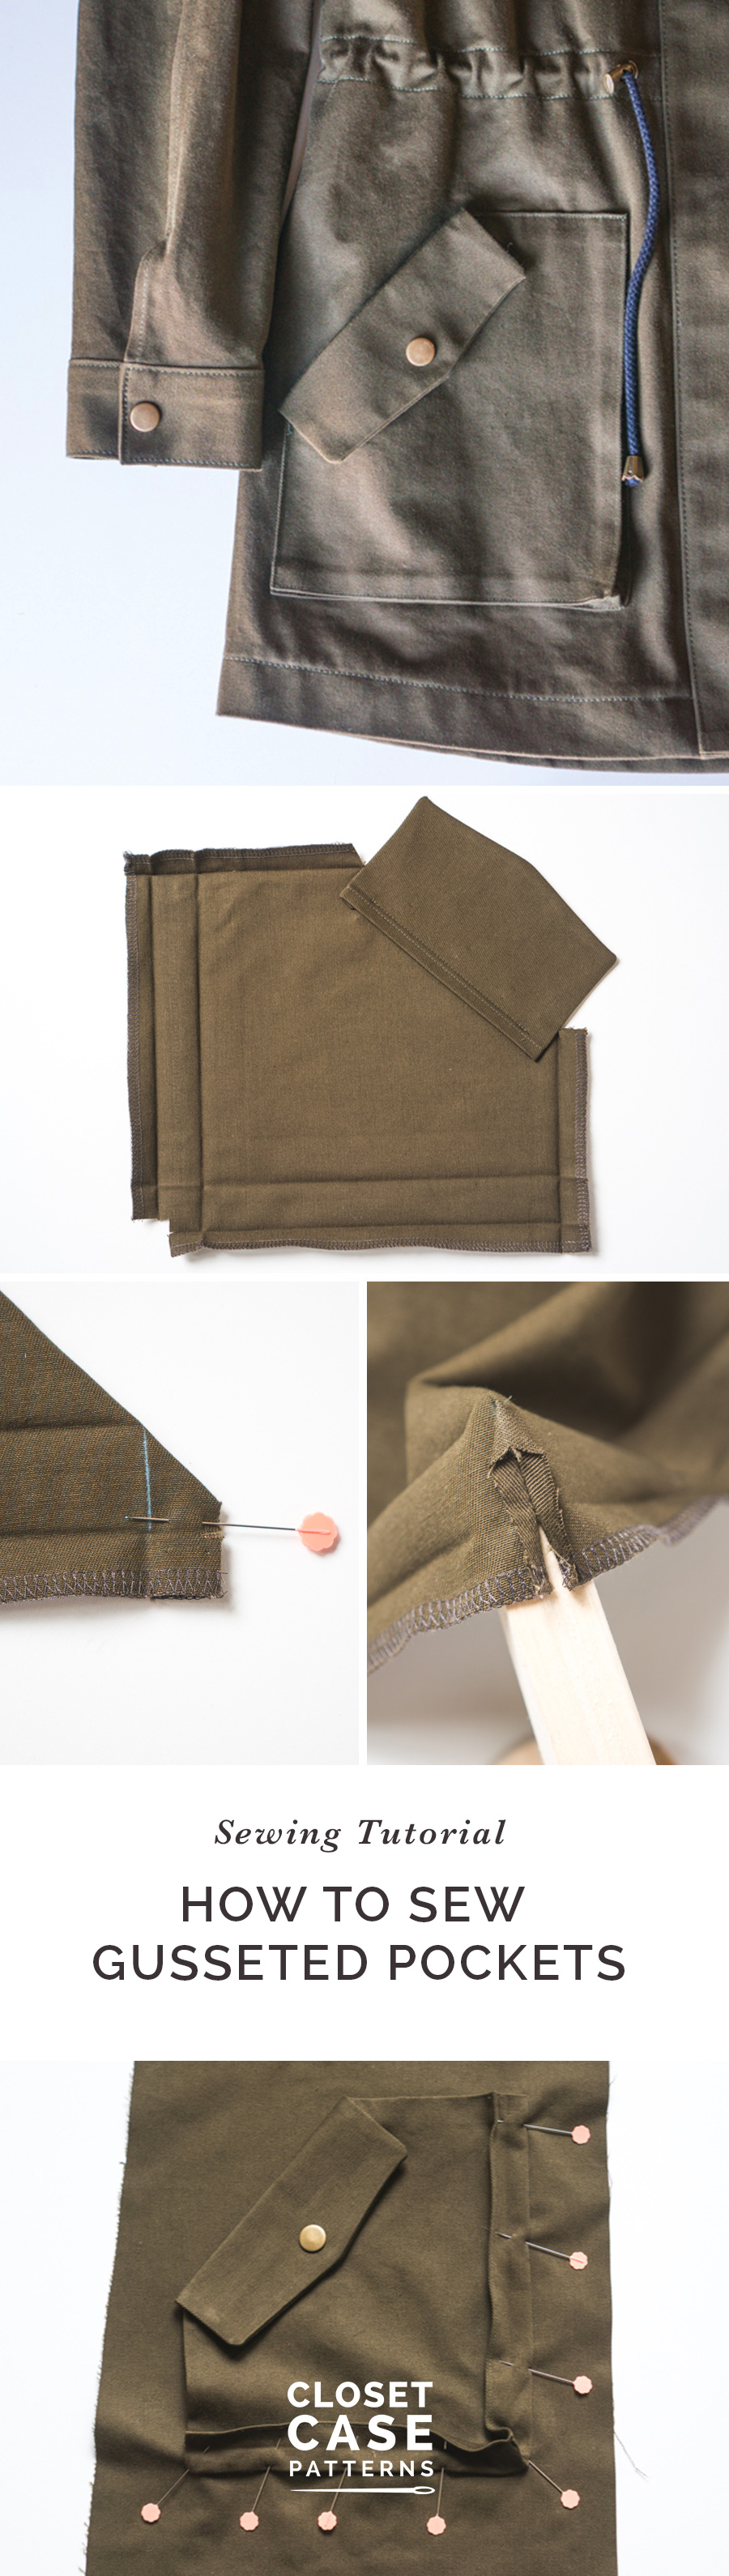 A tutorial for sewing gusseted pockets from Closet Case Patterns